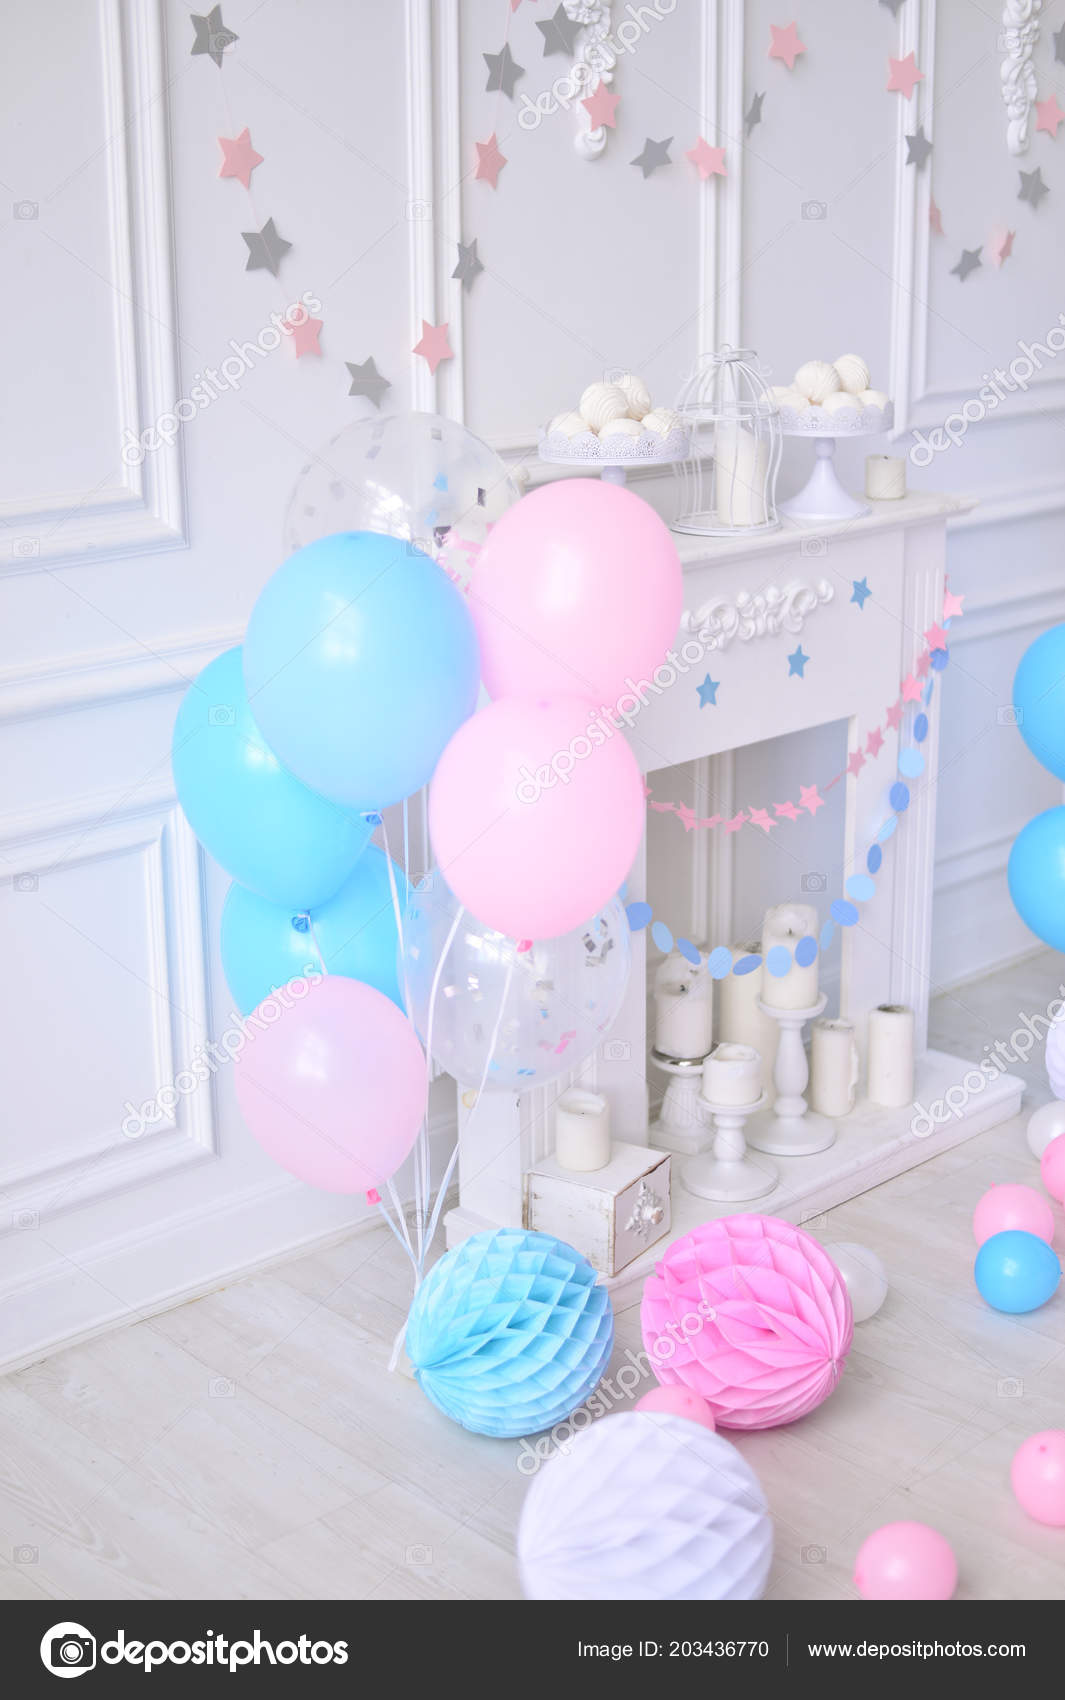 Birthday Decorations Ideas Holiday Party Lot Balloons Blue Stock Photo